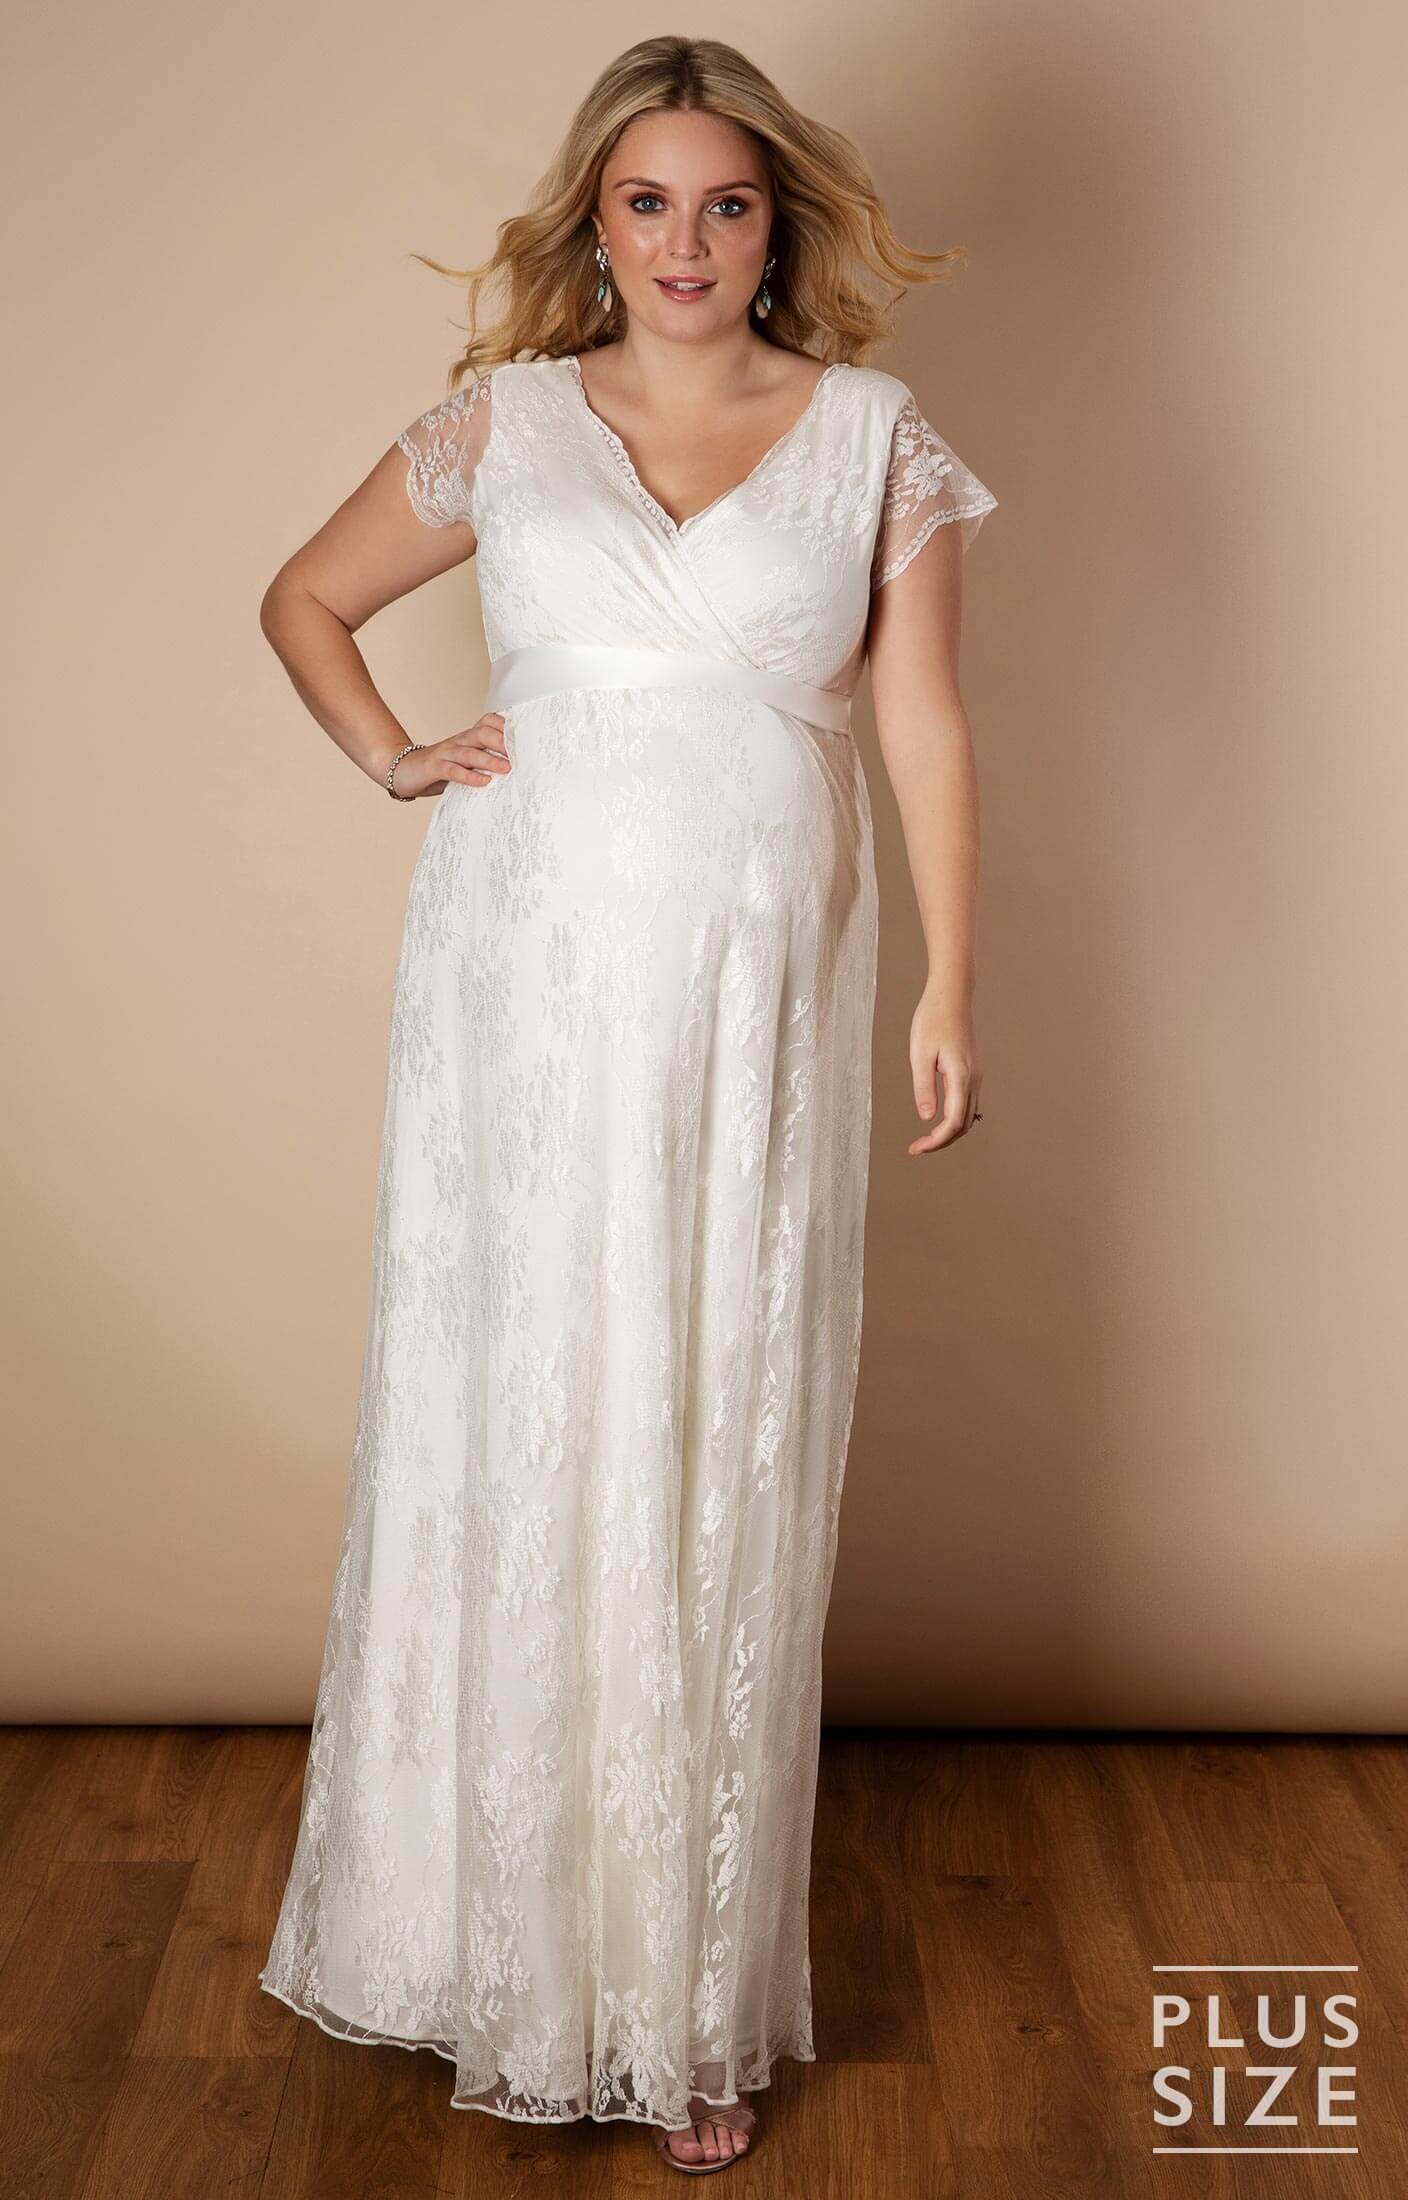 Eden Lace Plus Size Gown Long Ivory - Maternity Wedding Dresses, Evening  Wear and Party Clothes by Tiffany Rose